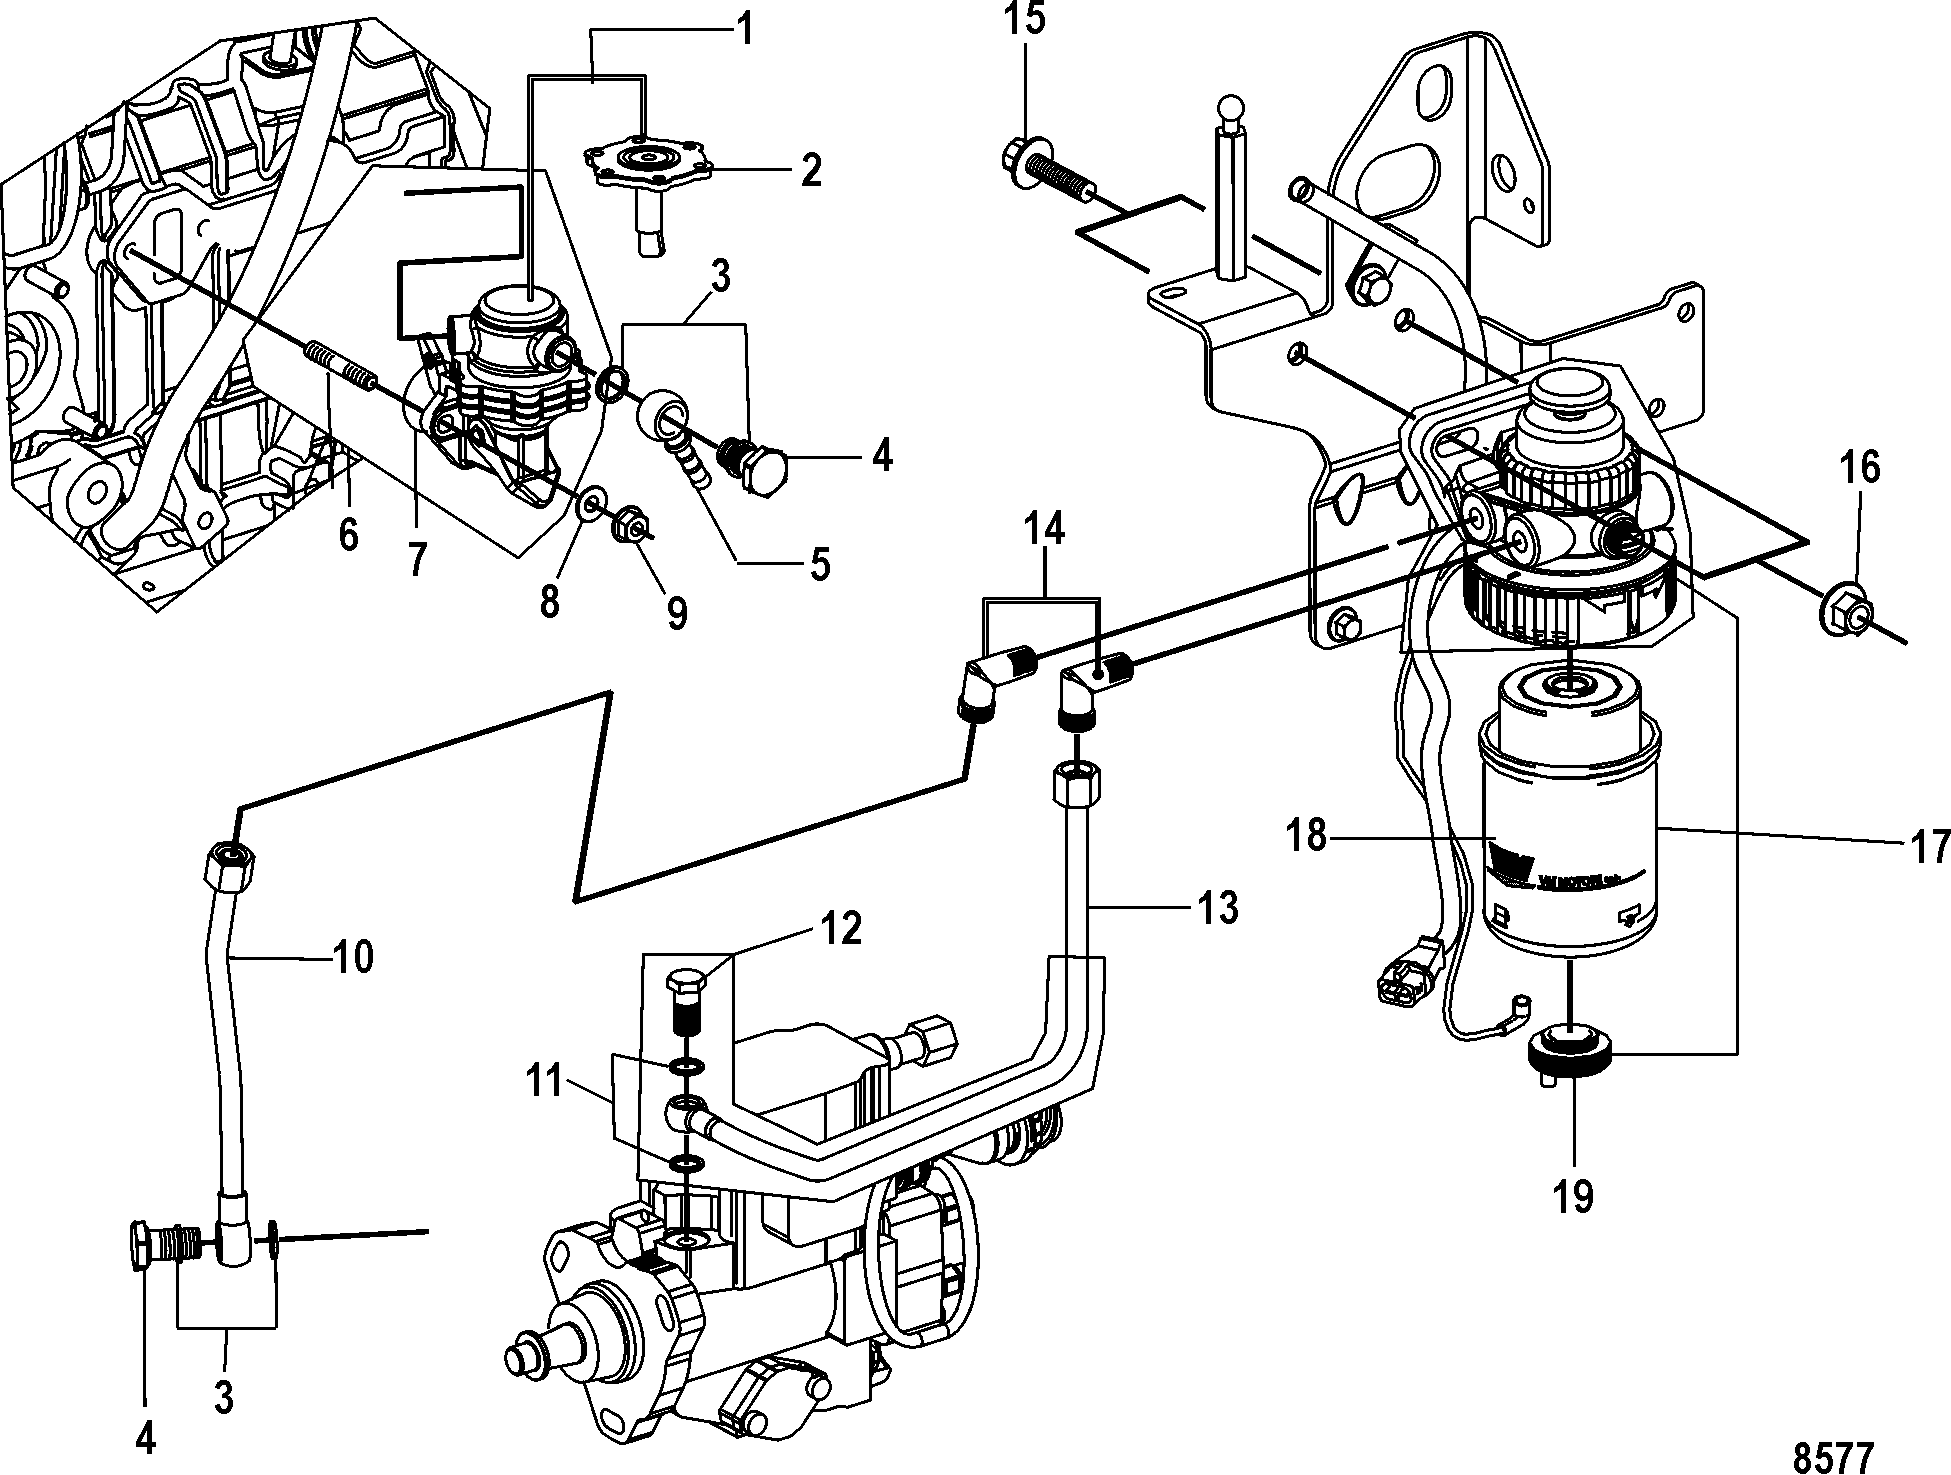 Mercruiser Wiring Harness Diagram 2 8 Schematic 120 Fuel Pump And Filter